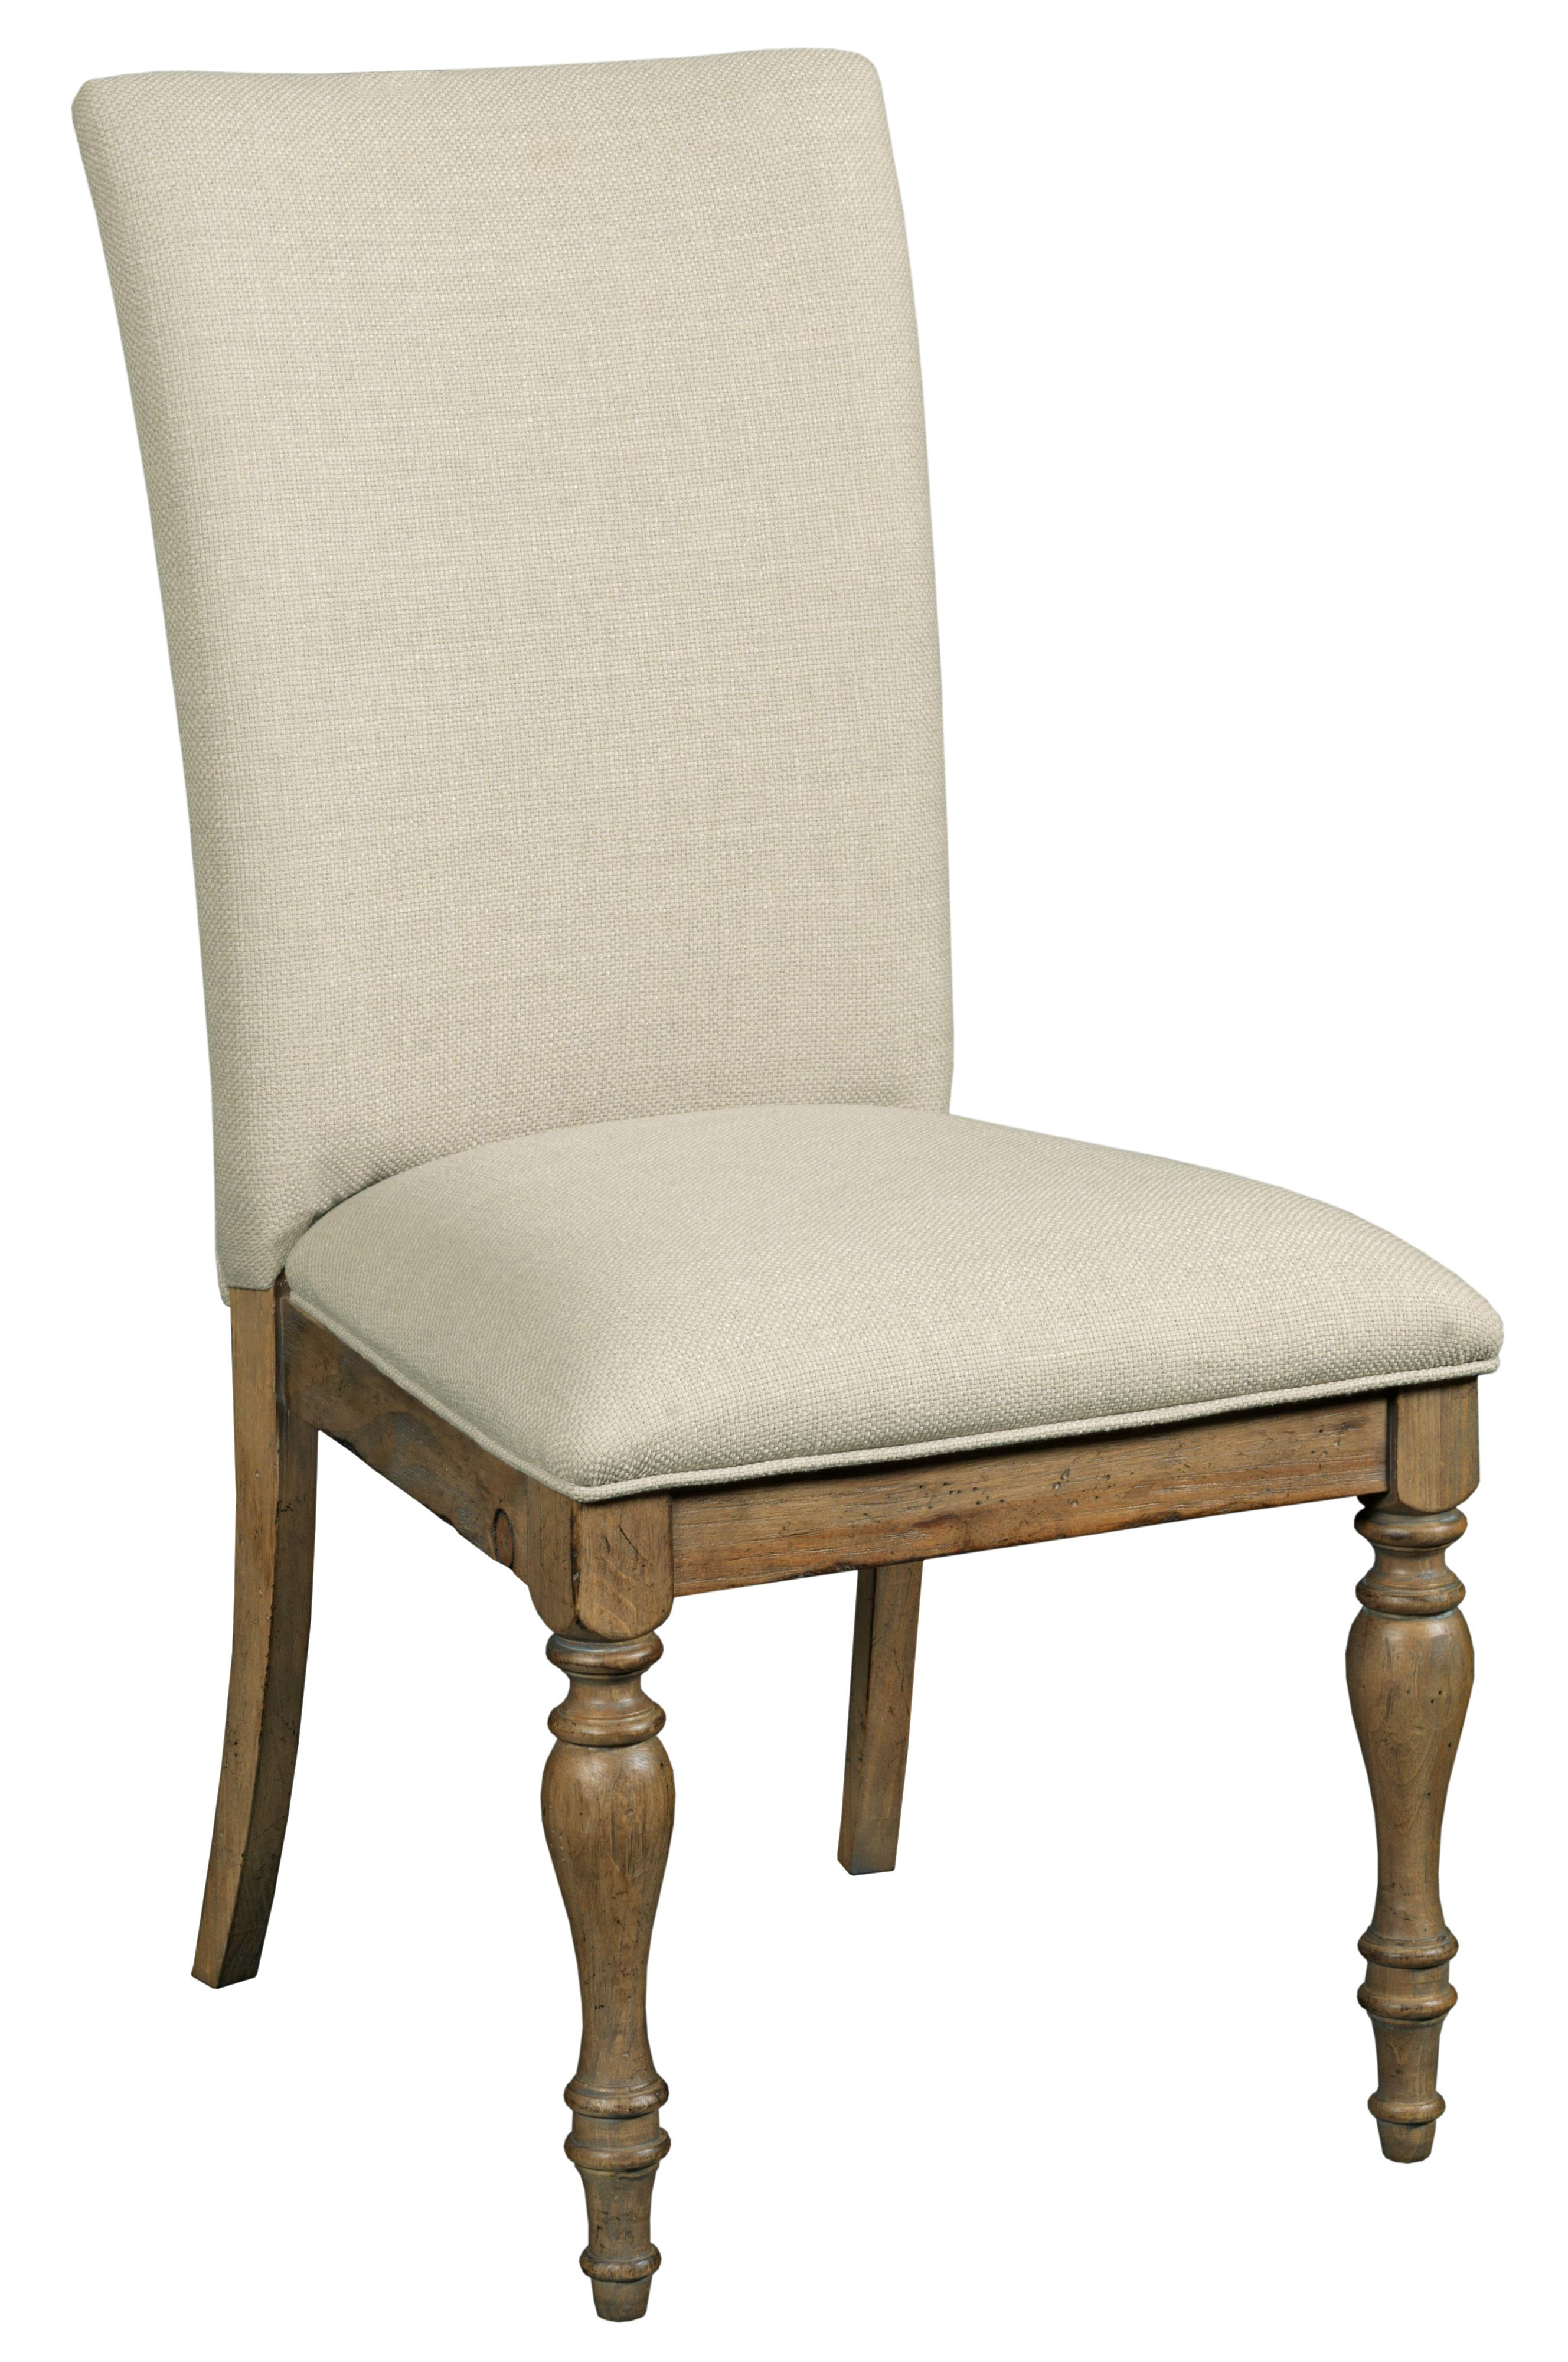 Weatherford Tasman Upholstered Chair by Kincaid Furniture at Northeast Factory Direct